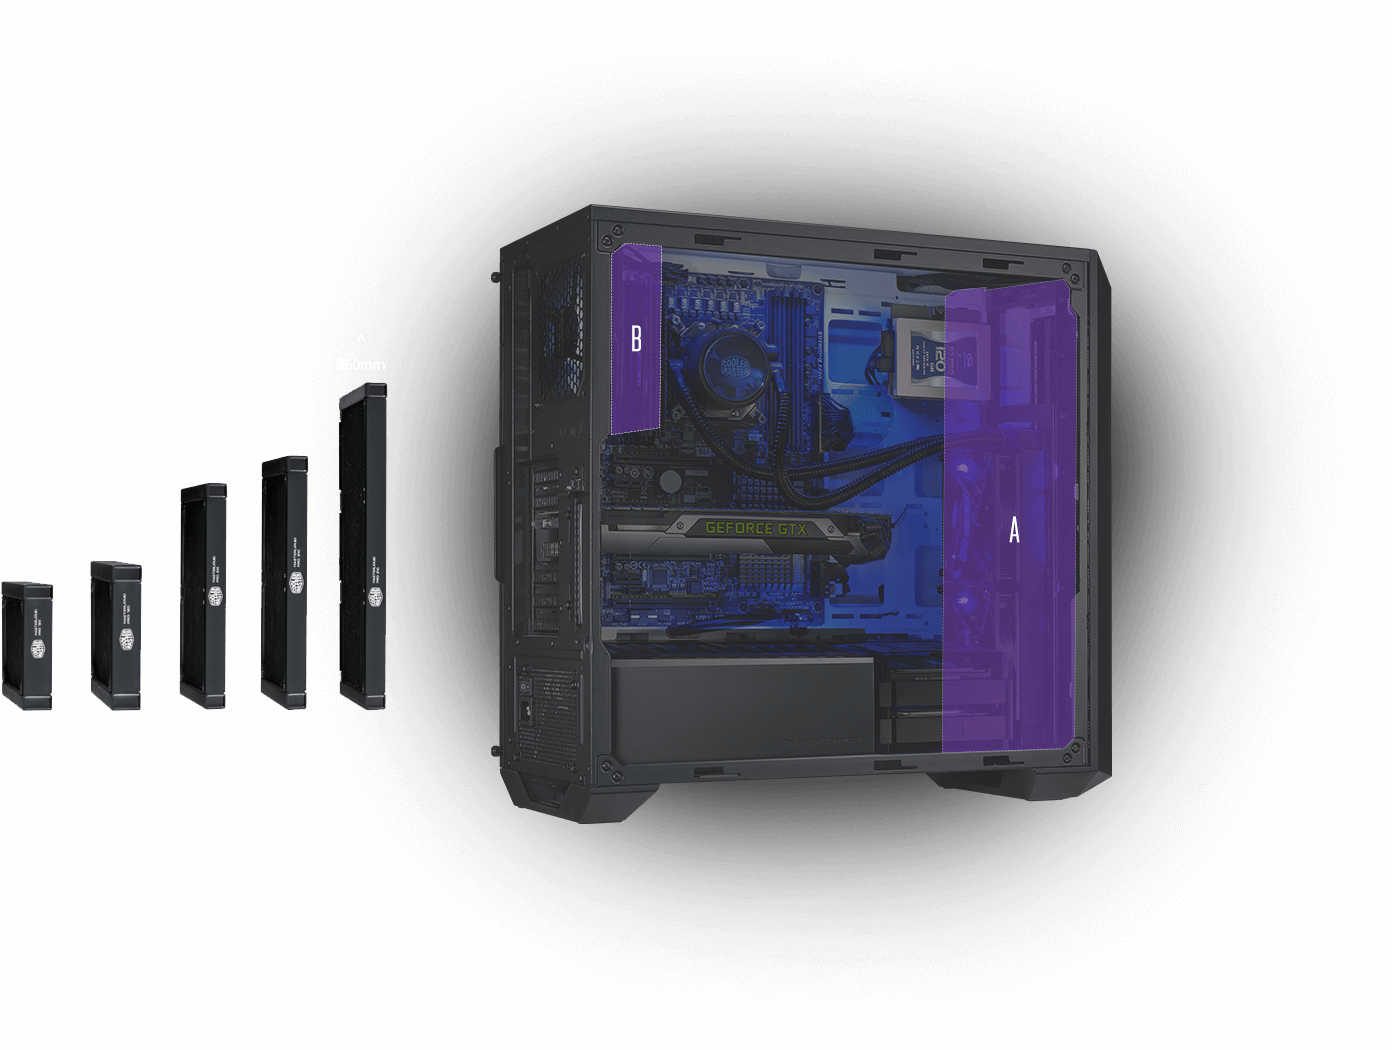 Masterbox Pro 5 Rgb Cooler Master Corsair Cases Wiring Diagrams Internal Configuration